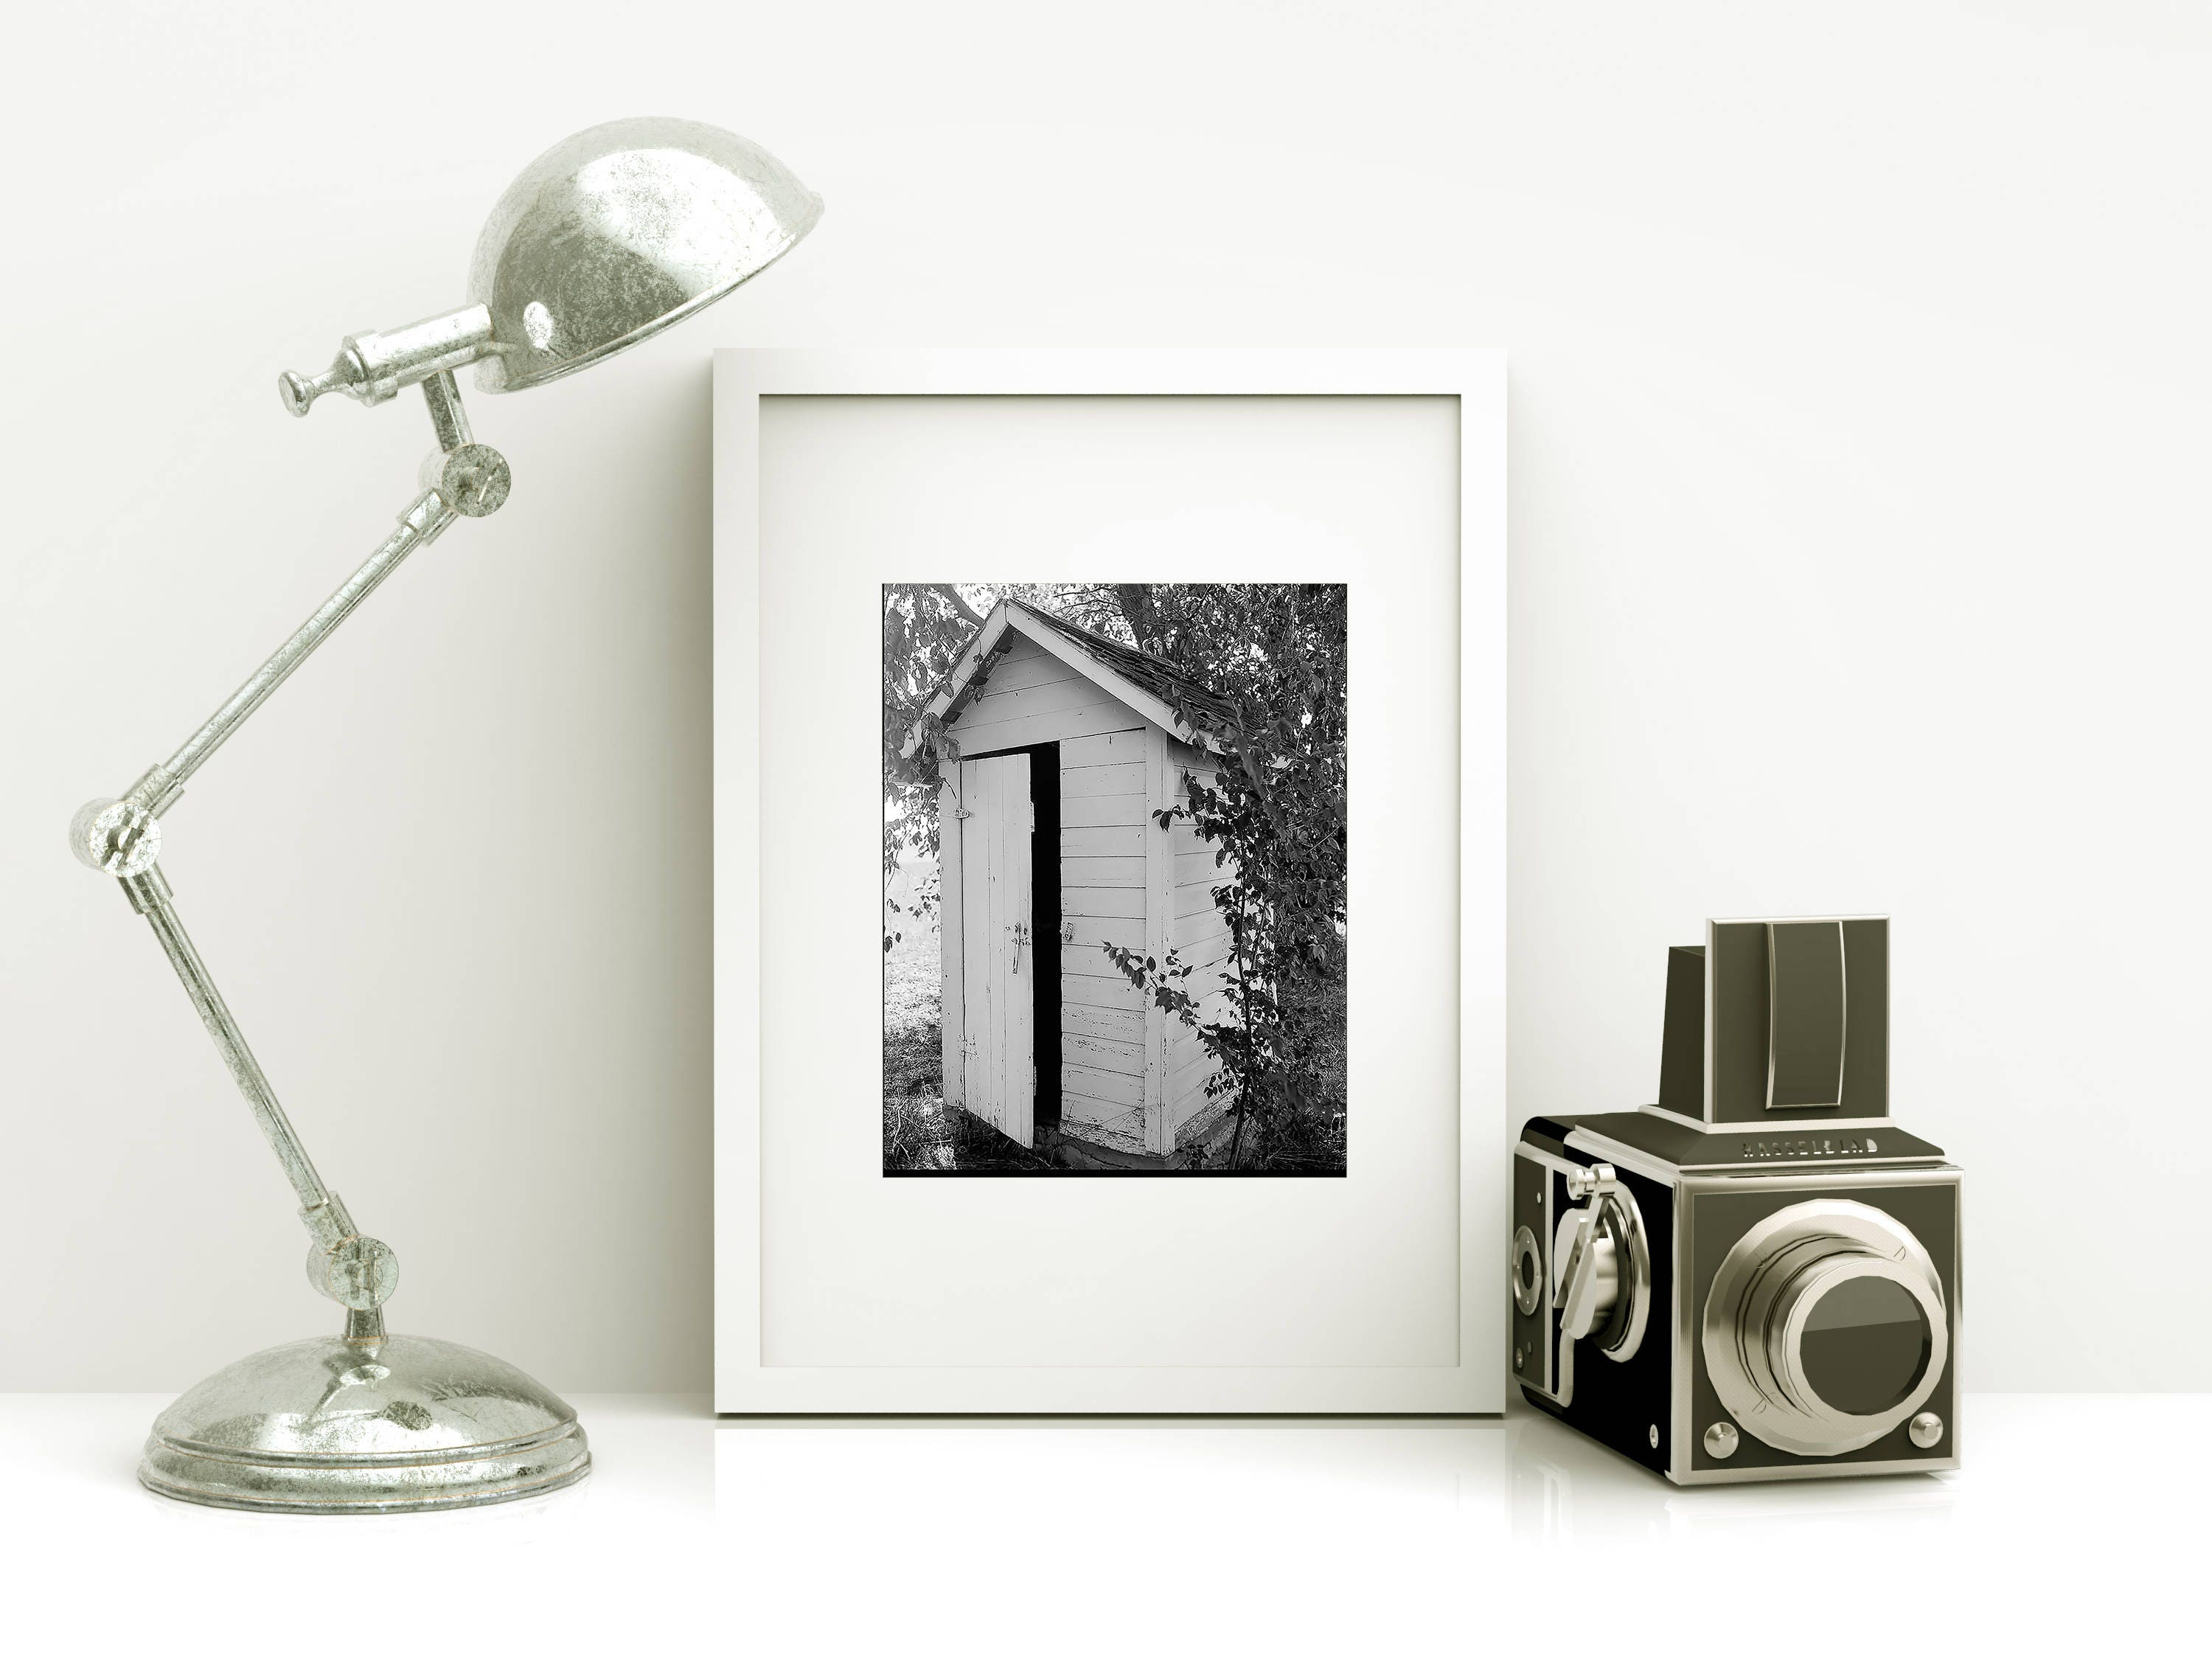 Framed BATHROOM Art   Powder Room Art   Vintage Outhouse Photo   Free  Shipping   Black Or White Frame   Outhouse Art   Rustic Decor